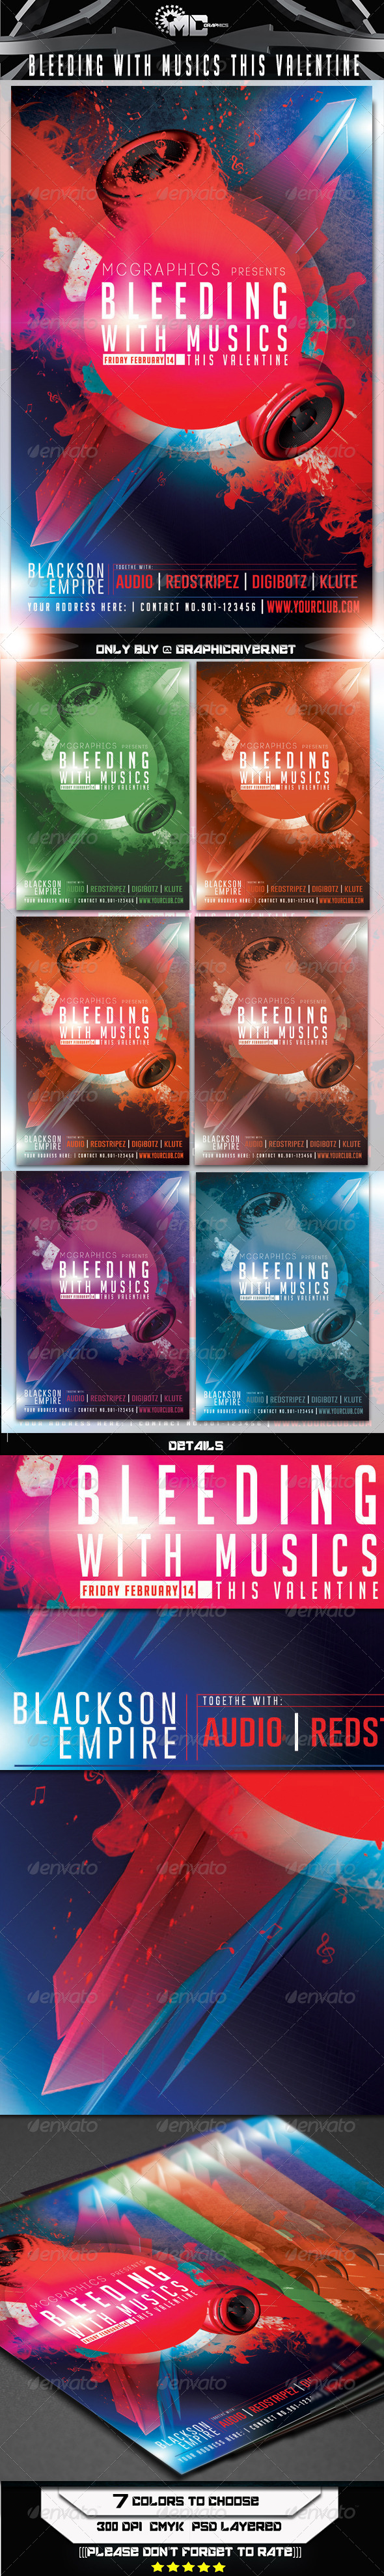 GraphicRiver Bleeding with Musics this Valentine Flyer Template 6685590